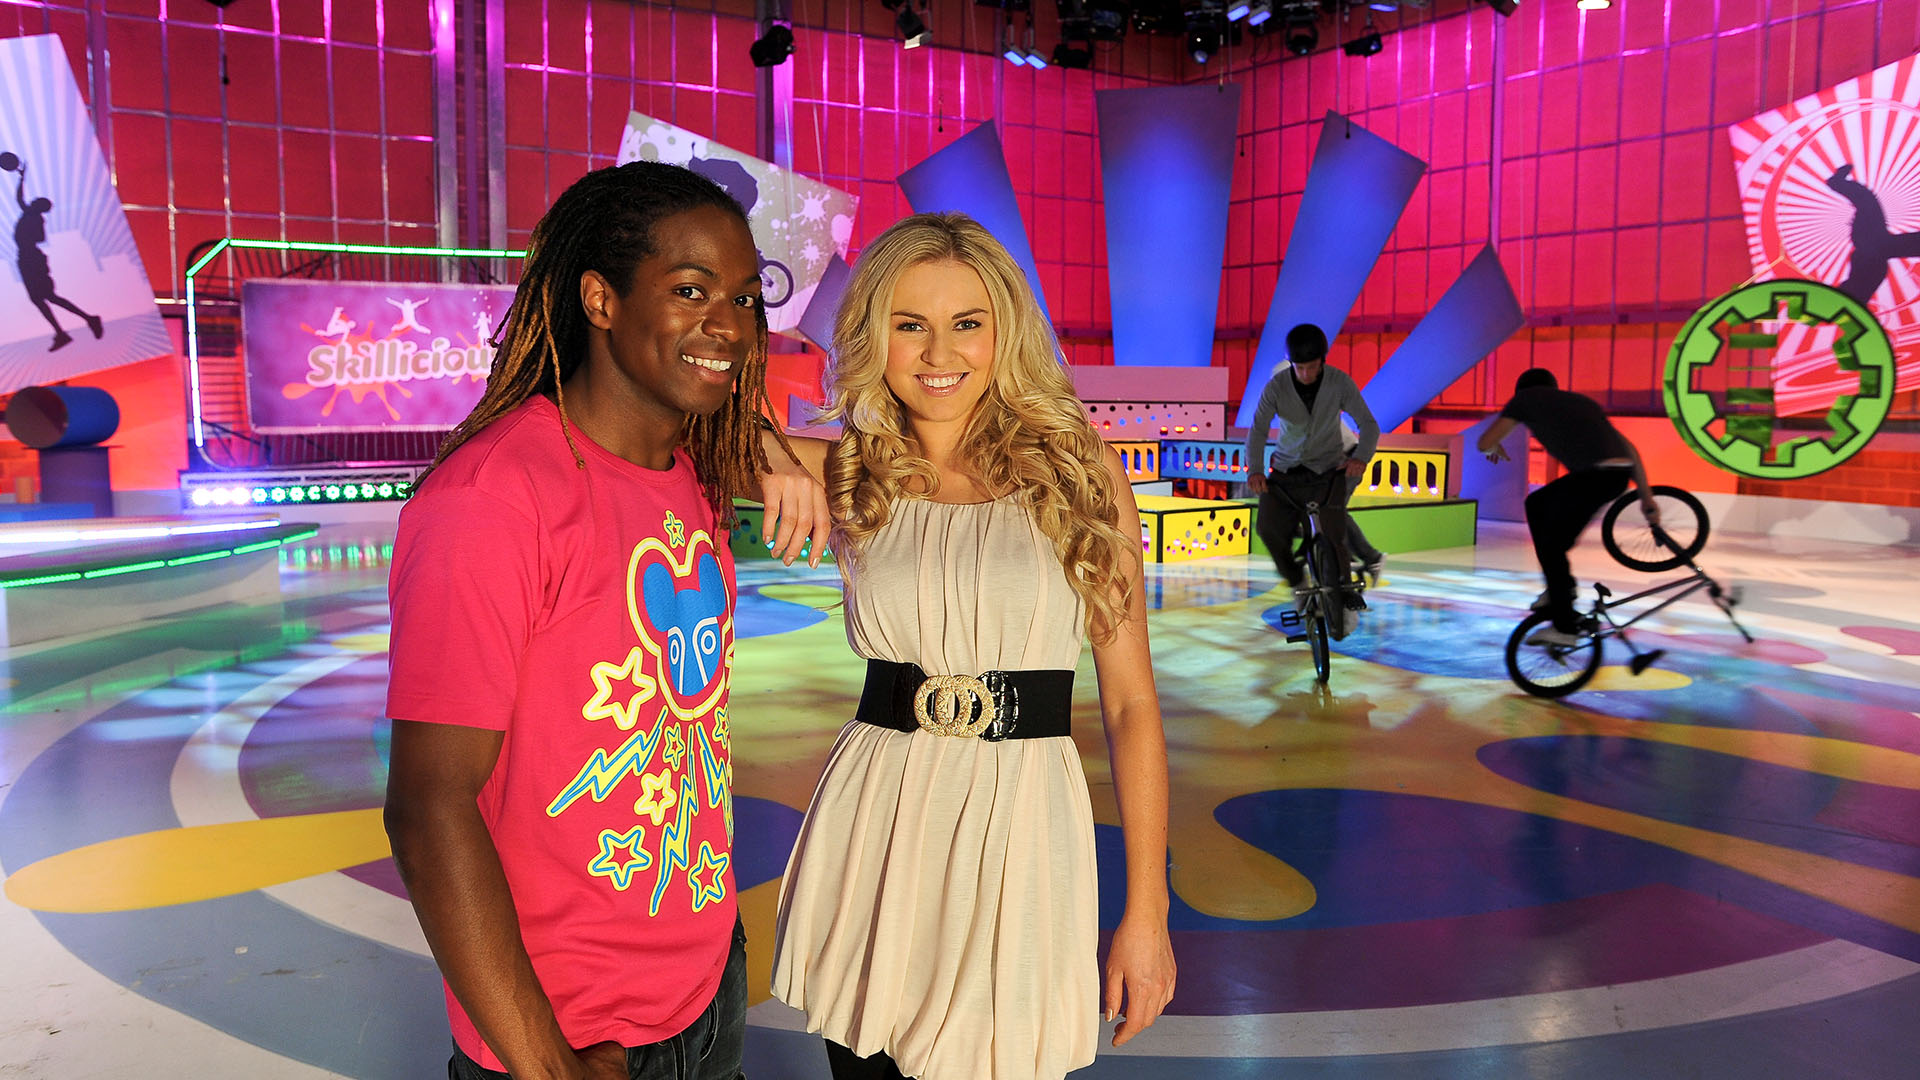 Previous Work - Citv's Skillicious - production still with presenters Nigel Clarke and Zoe Salmon